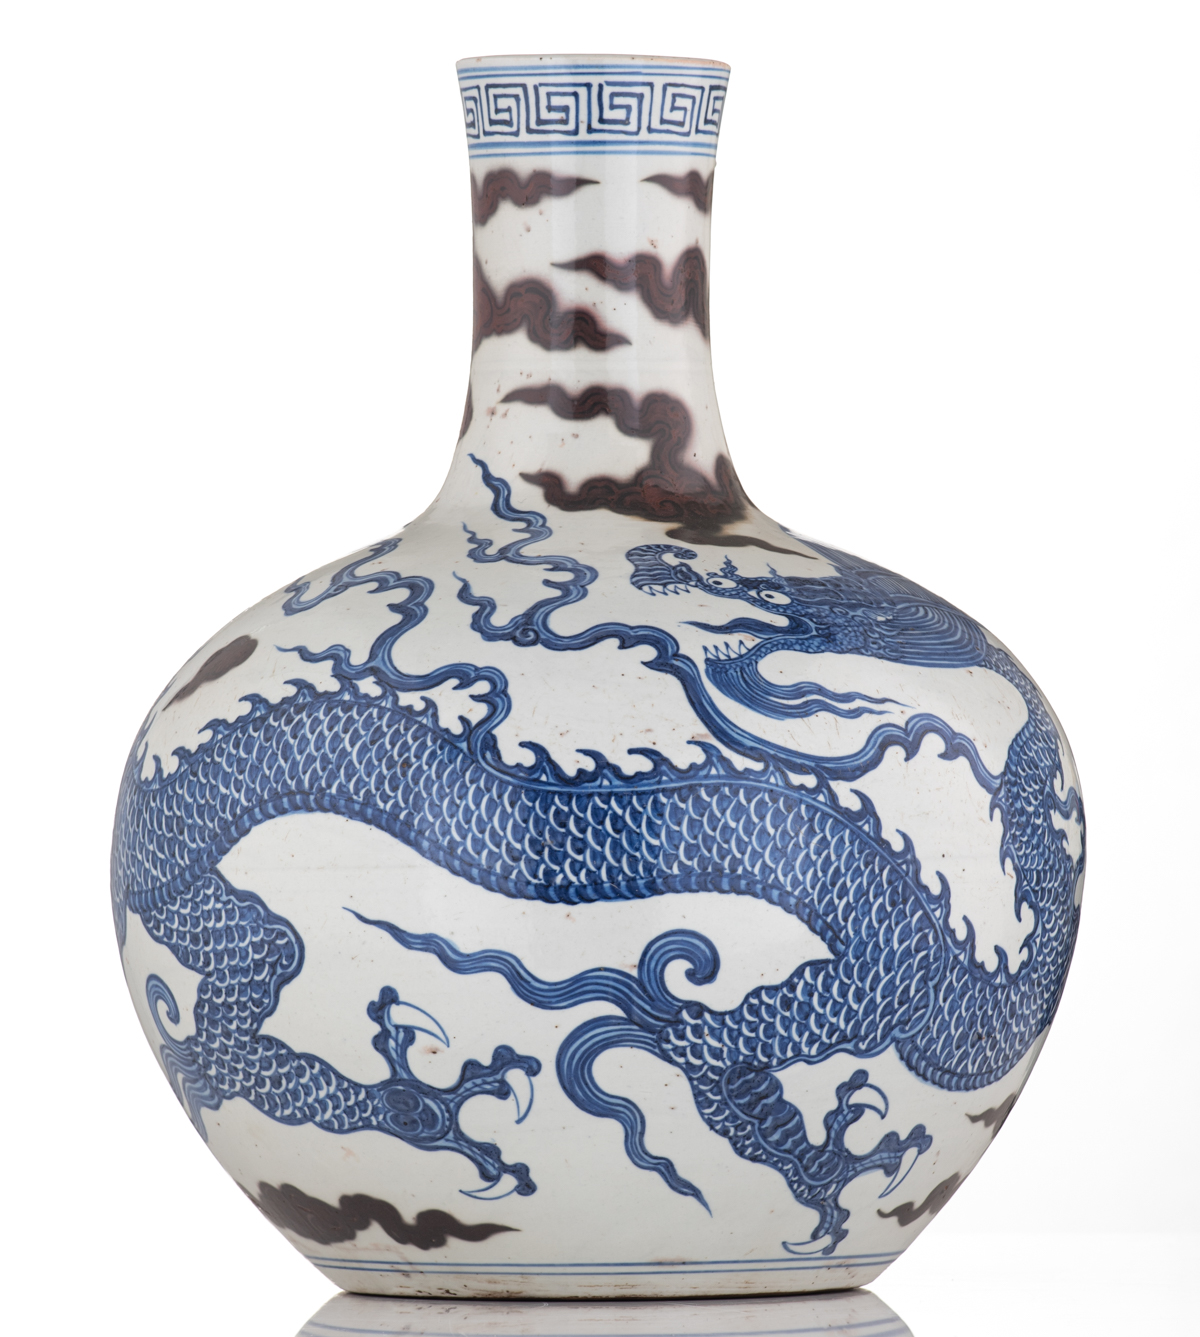 Lot 29 - A Chinese cobalt blue and copper red bottle vase, decorated with a dragon amongst clouds, H 41 cm